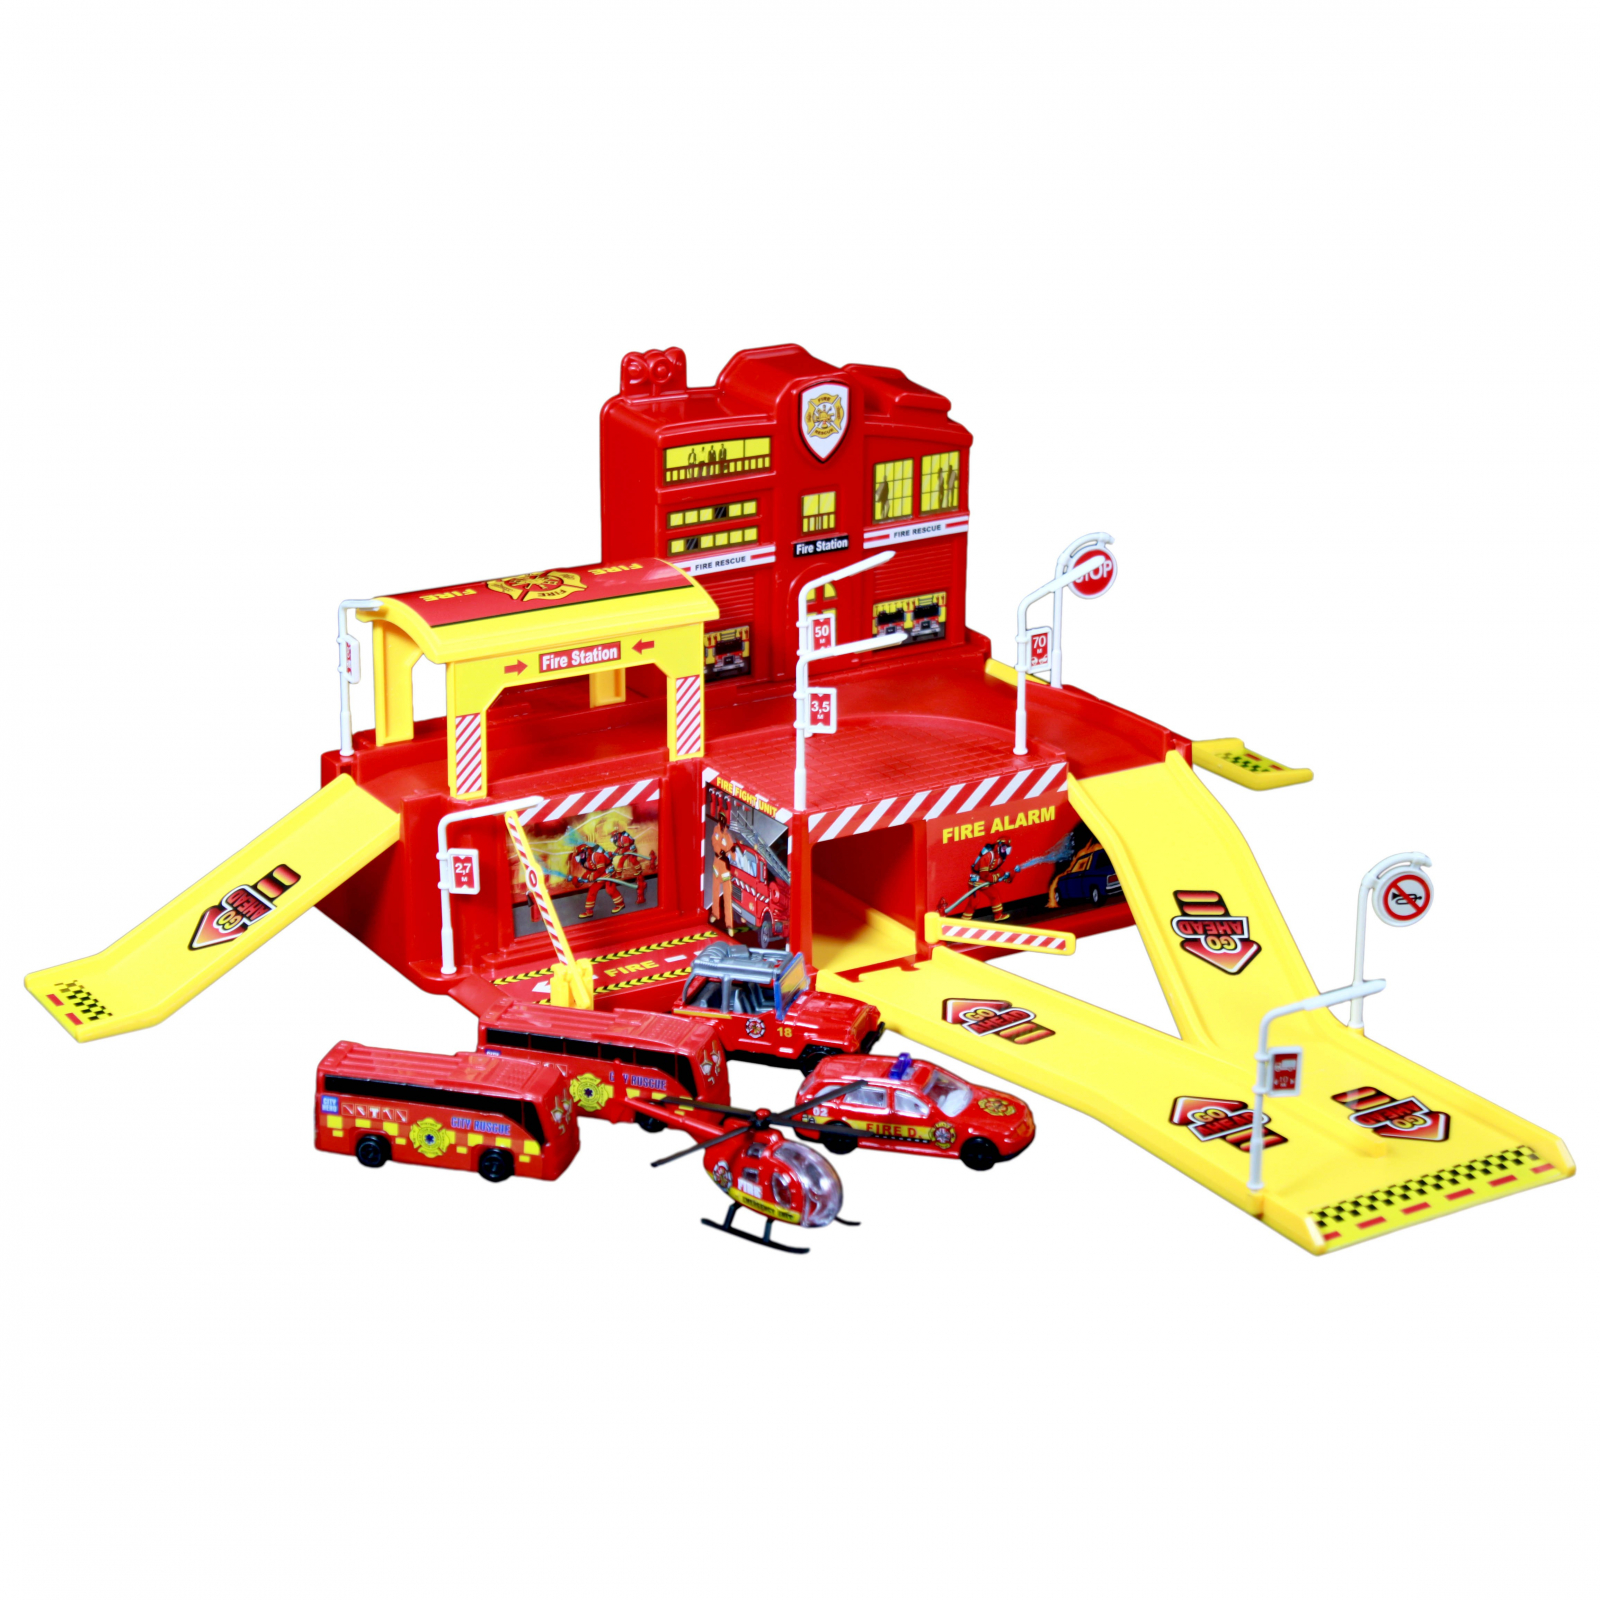 TychoTyke Fire Station Action Parking Garage Play Set Toys